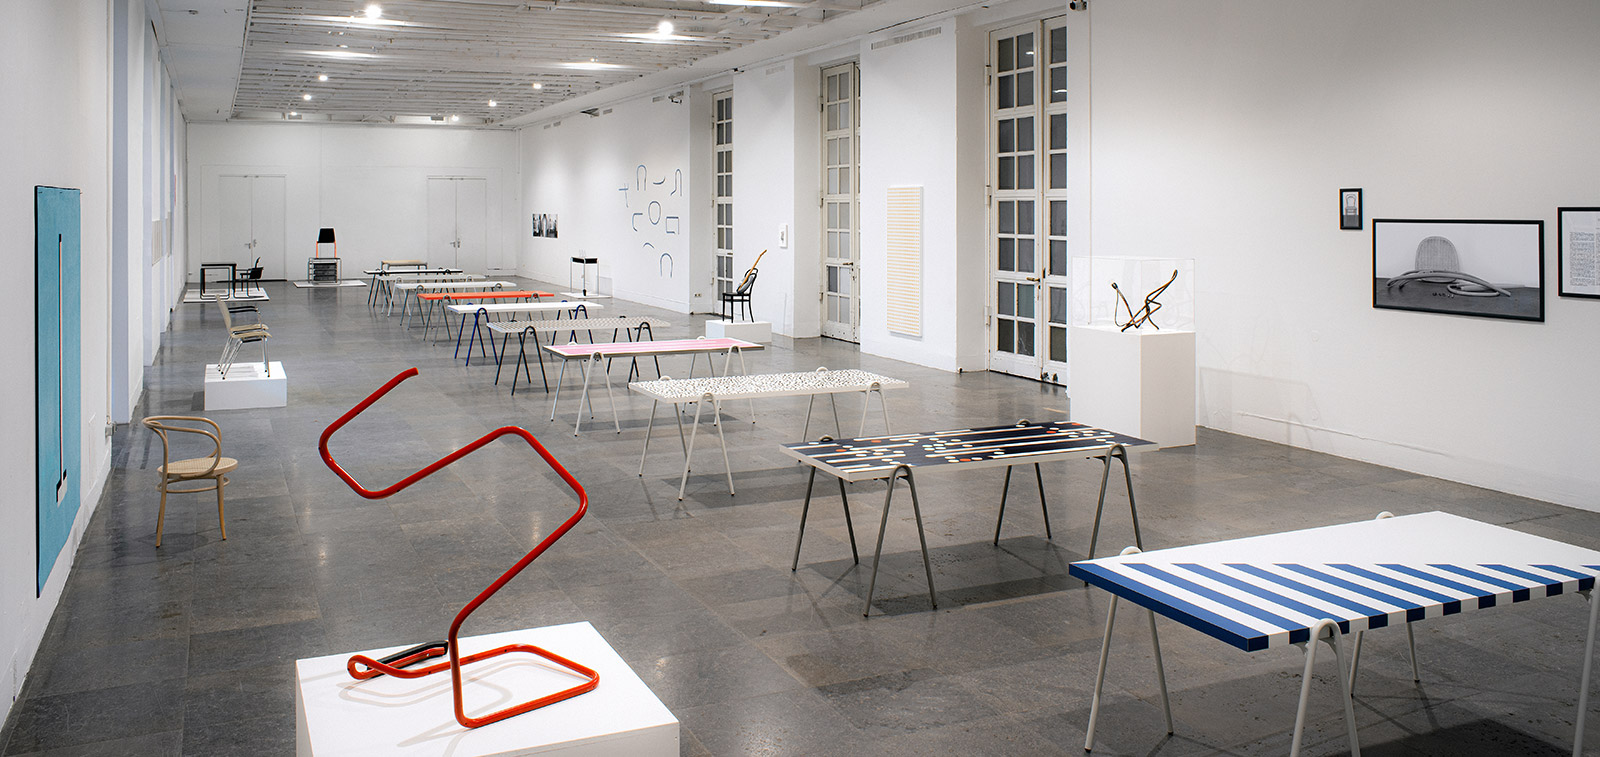 Thonet200 exhibition - picture 1